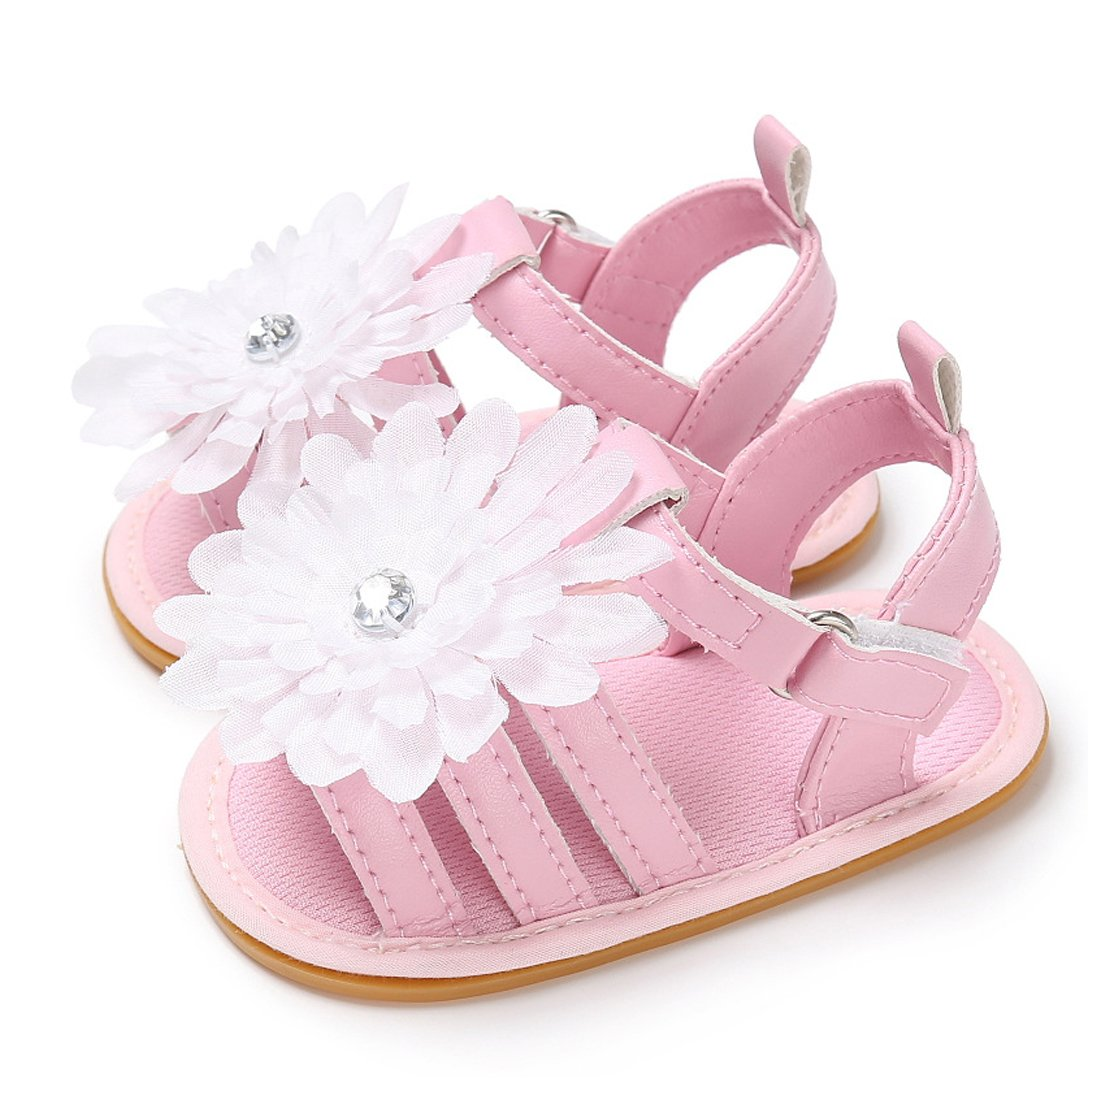 e06cda6ee56f Sabe Infant Baby Girls Soft Sole Sandals Non-Slip Dress Wedding Crib Shoes  Christening Gift  Amazon.co.uk  Shoes   Bags